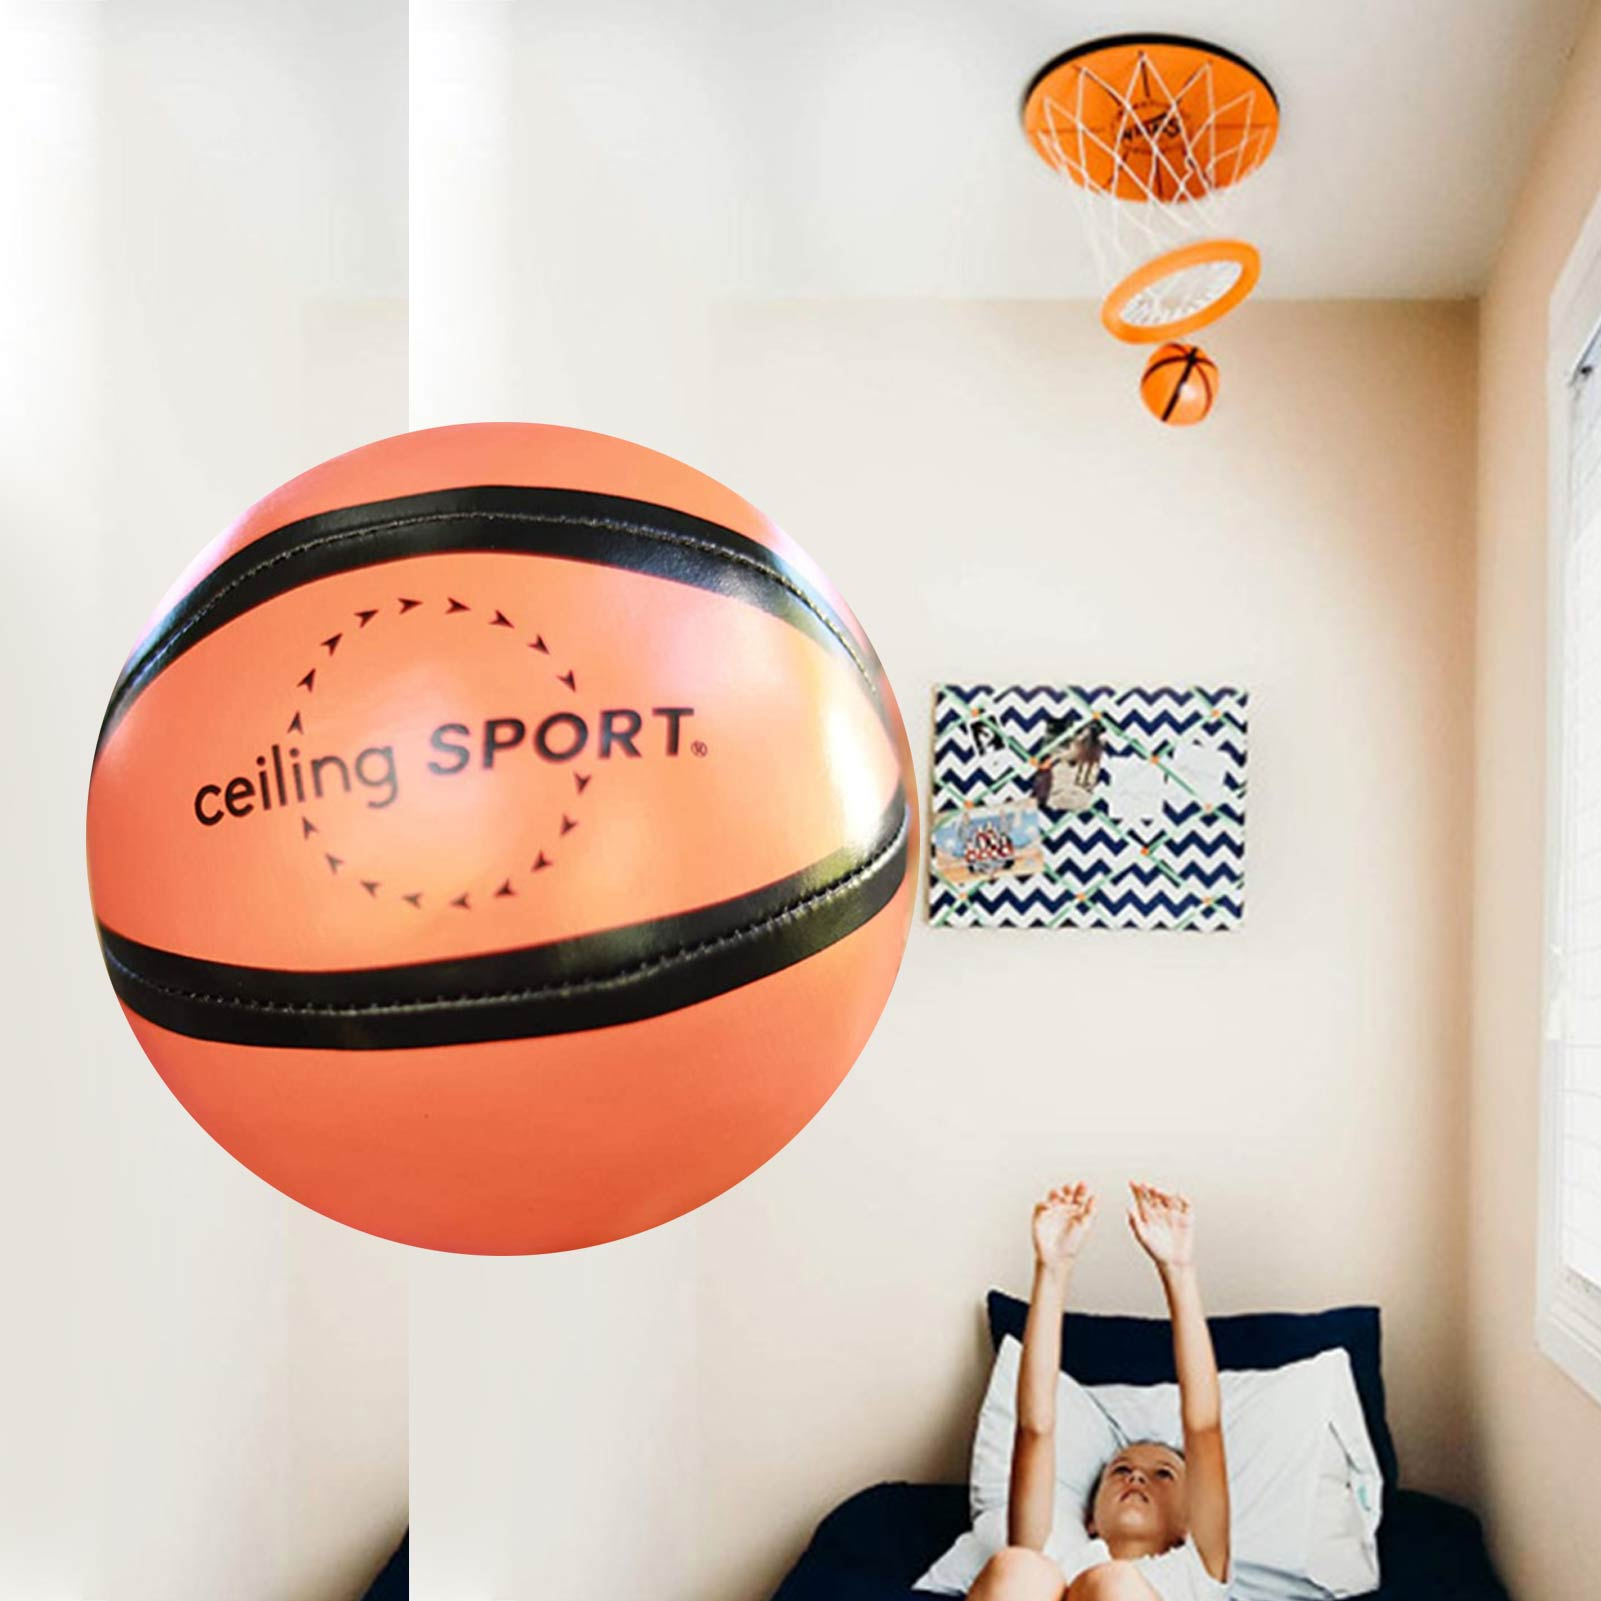 Ceiling Sports Indoor Mini Basketball Hoop Toy Suit With Mini Basketball Fun Kids Toy Indoor Home Basketball Supplies adjustable kids basketball stand hoop indoor outdoor shooting toy with metal pole